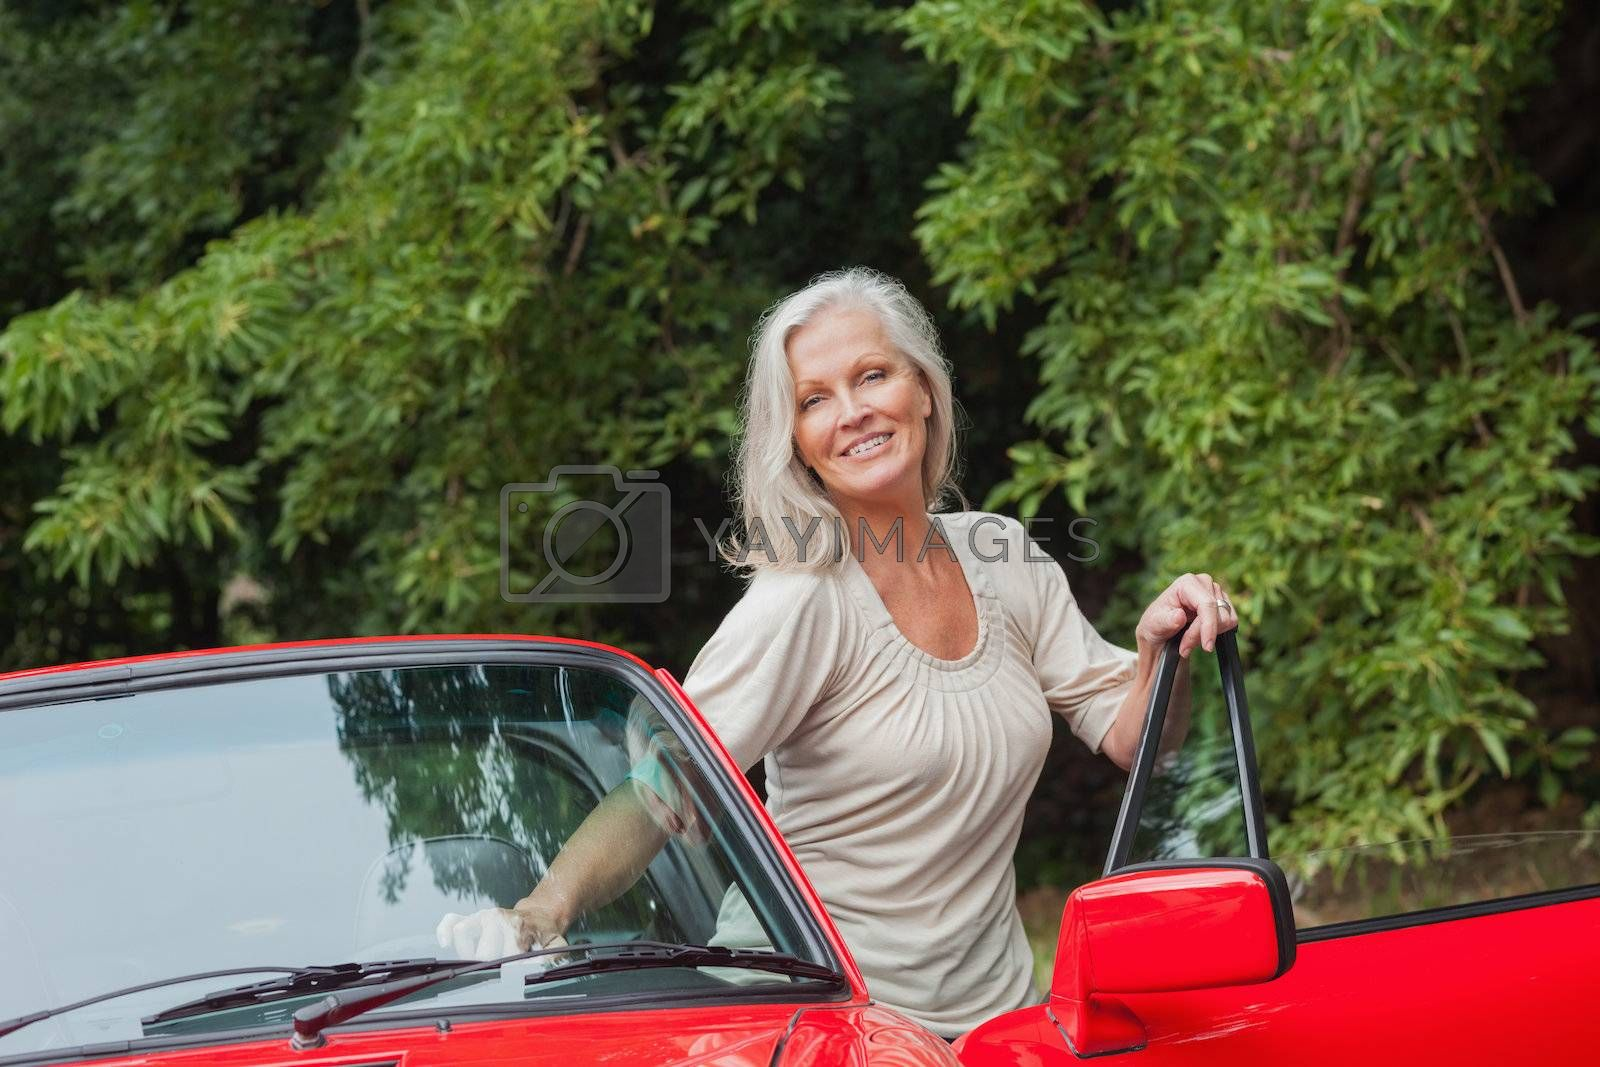 Cheerful mature woman getting off her convertible by Wavebreakmedia